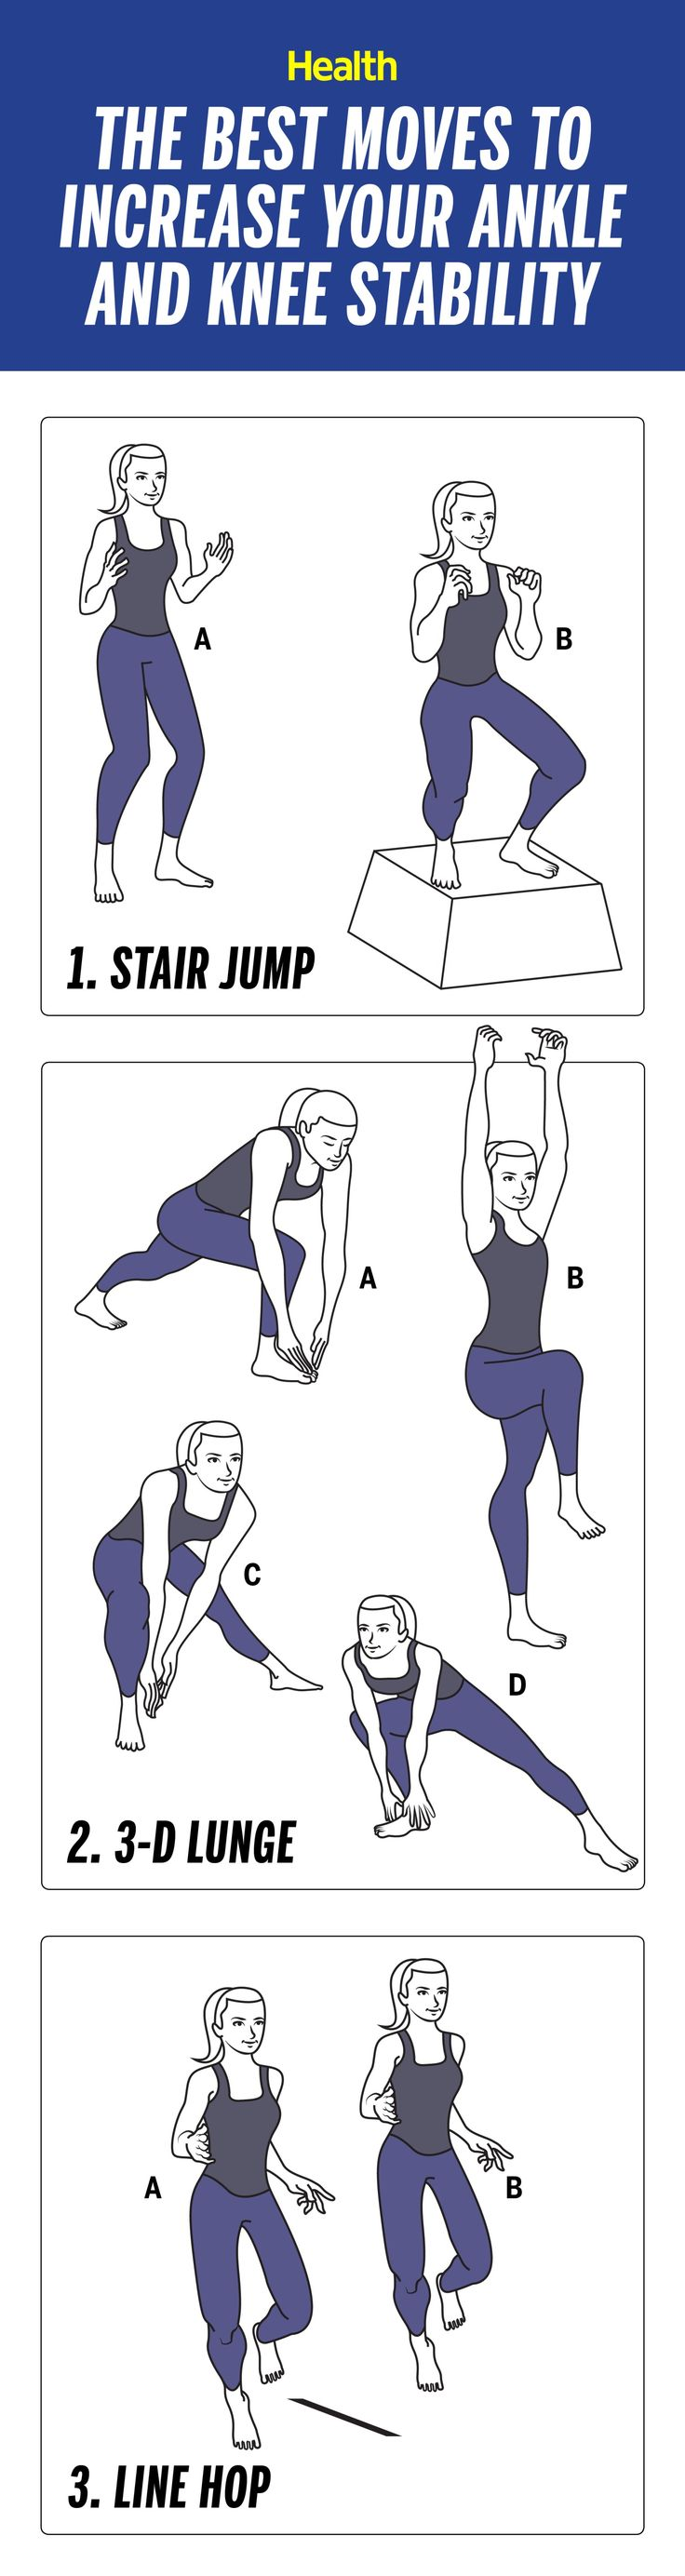 The best exercises to prevent knee and ankle injuries. These moves will increase your ankle and knee stability and make you more agile for your next off-road run.   Health.com